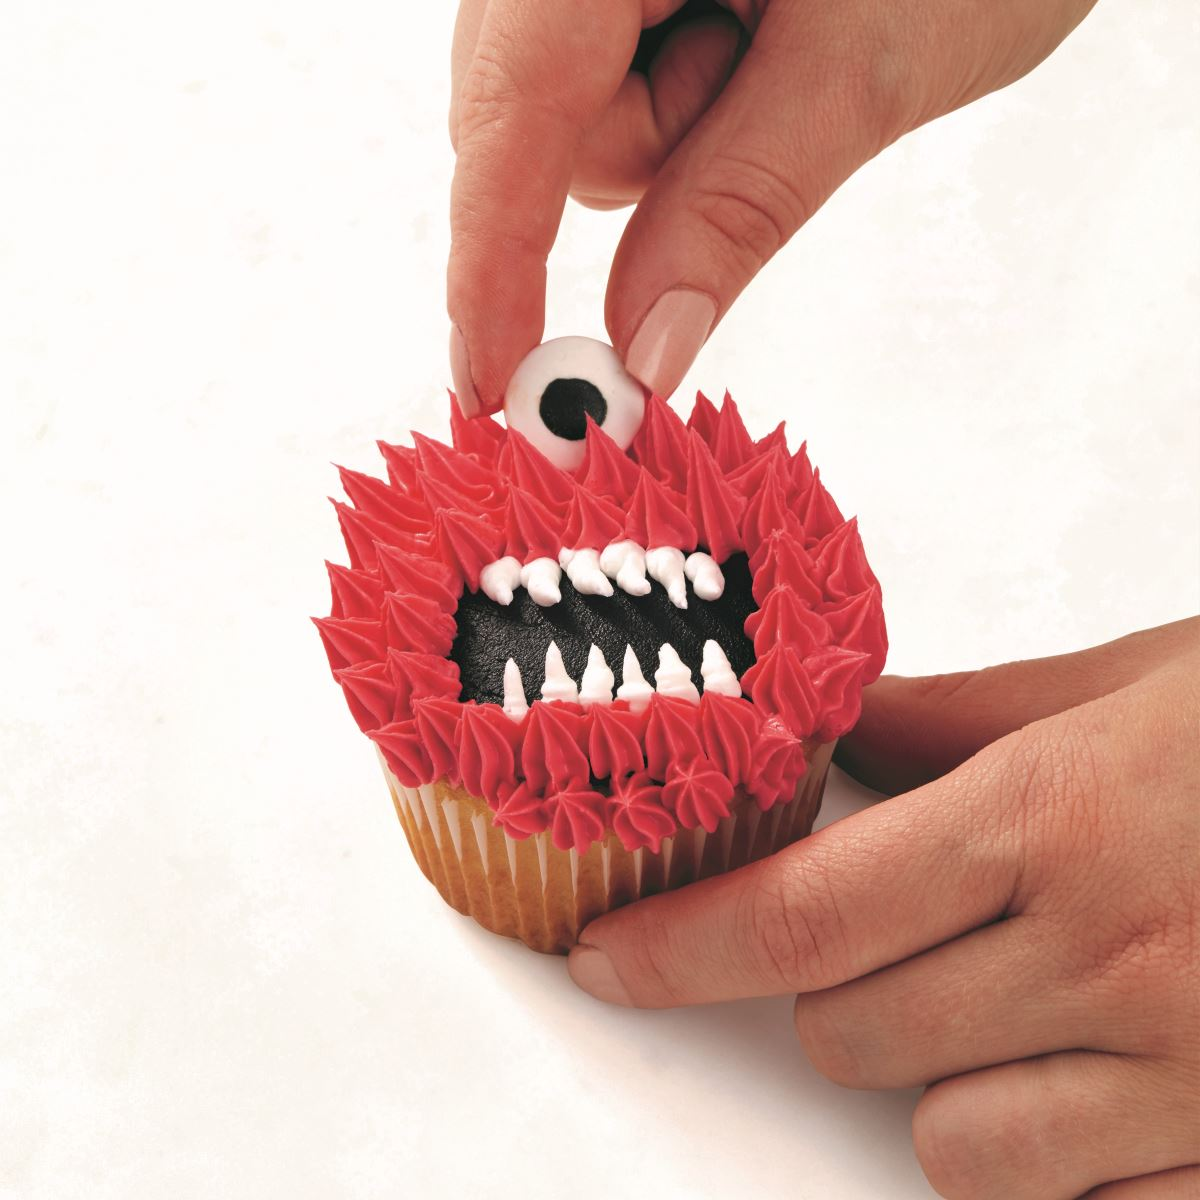 PINK ONE-EYED MONSTER CUPCAKE step 5